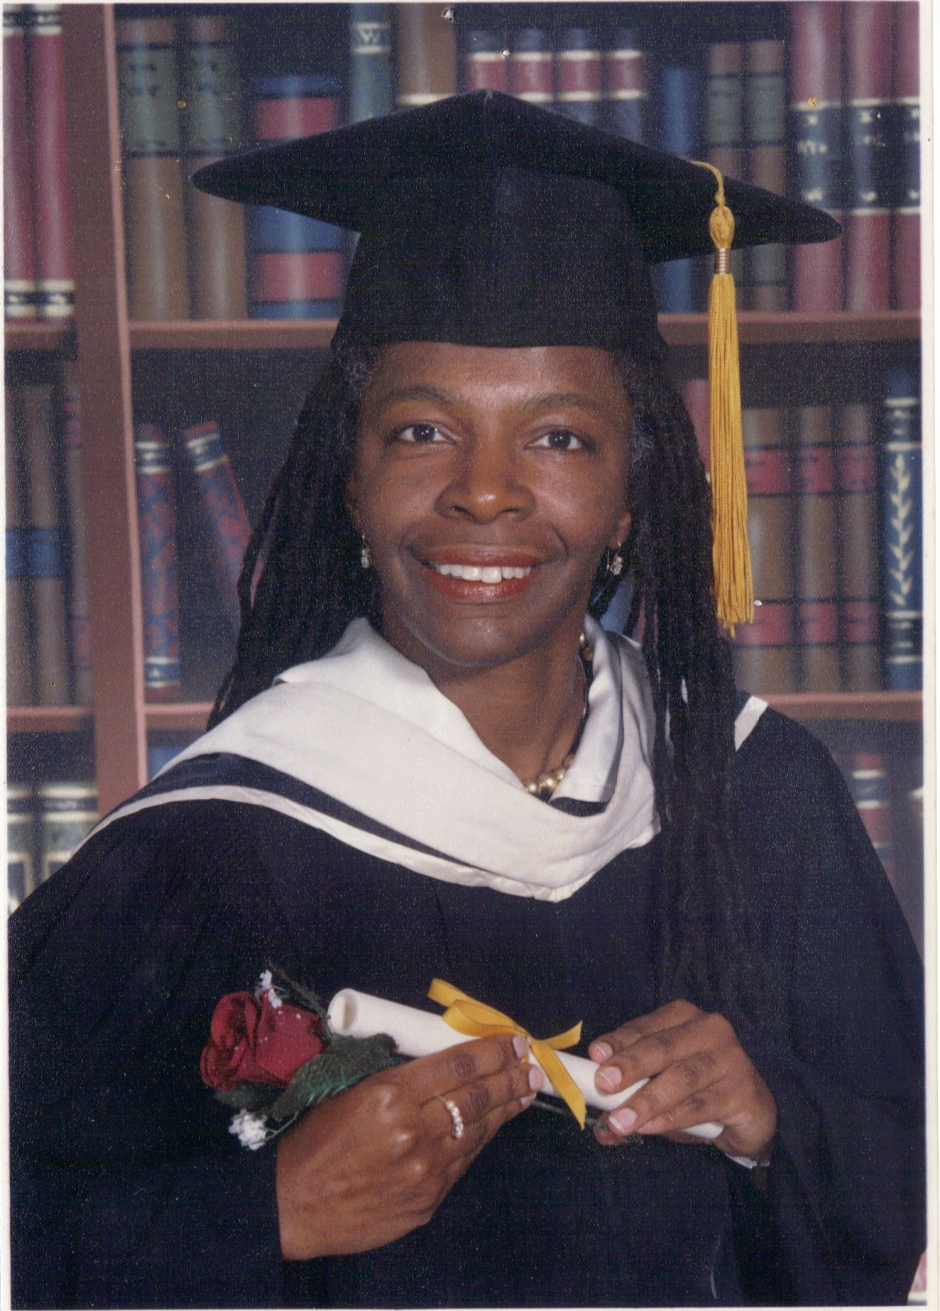 Marymount Manhattan College 2002 Graduation photo